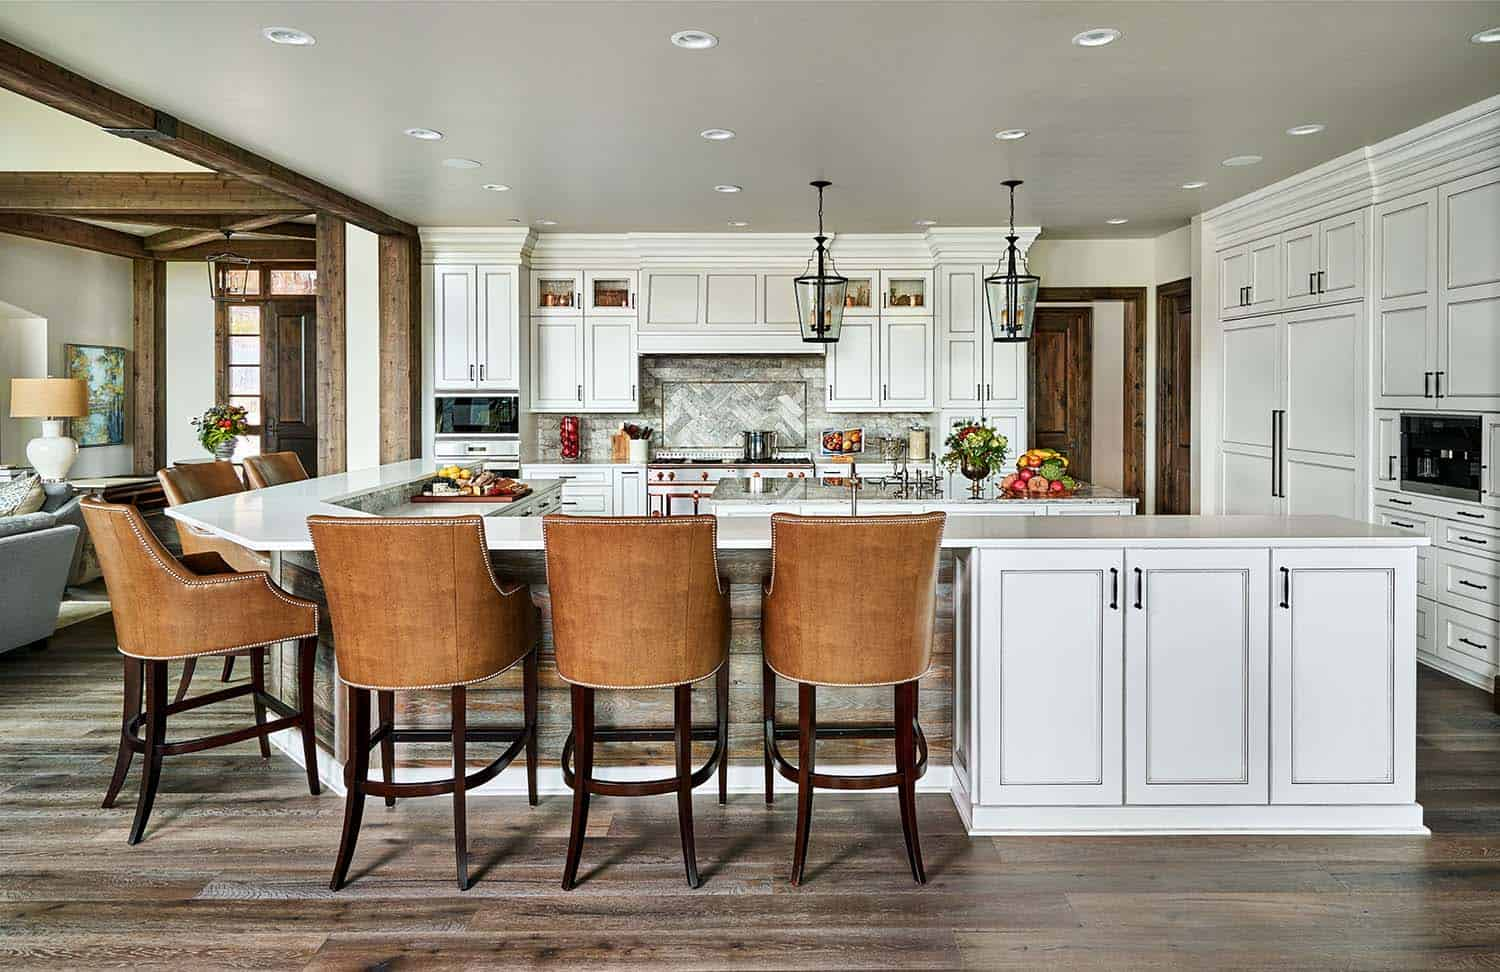 Contemporary Rustic Farmhouse With Stunning Living Spaces In